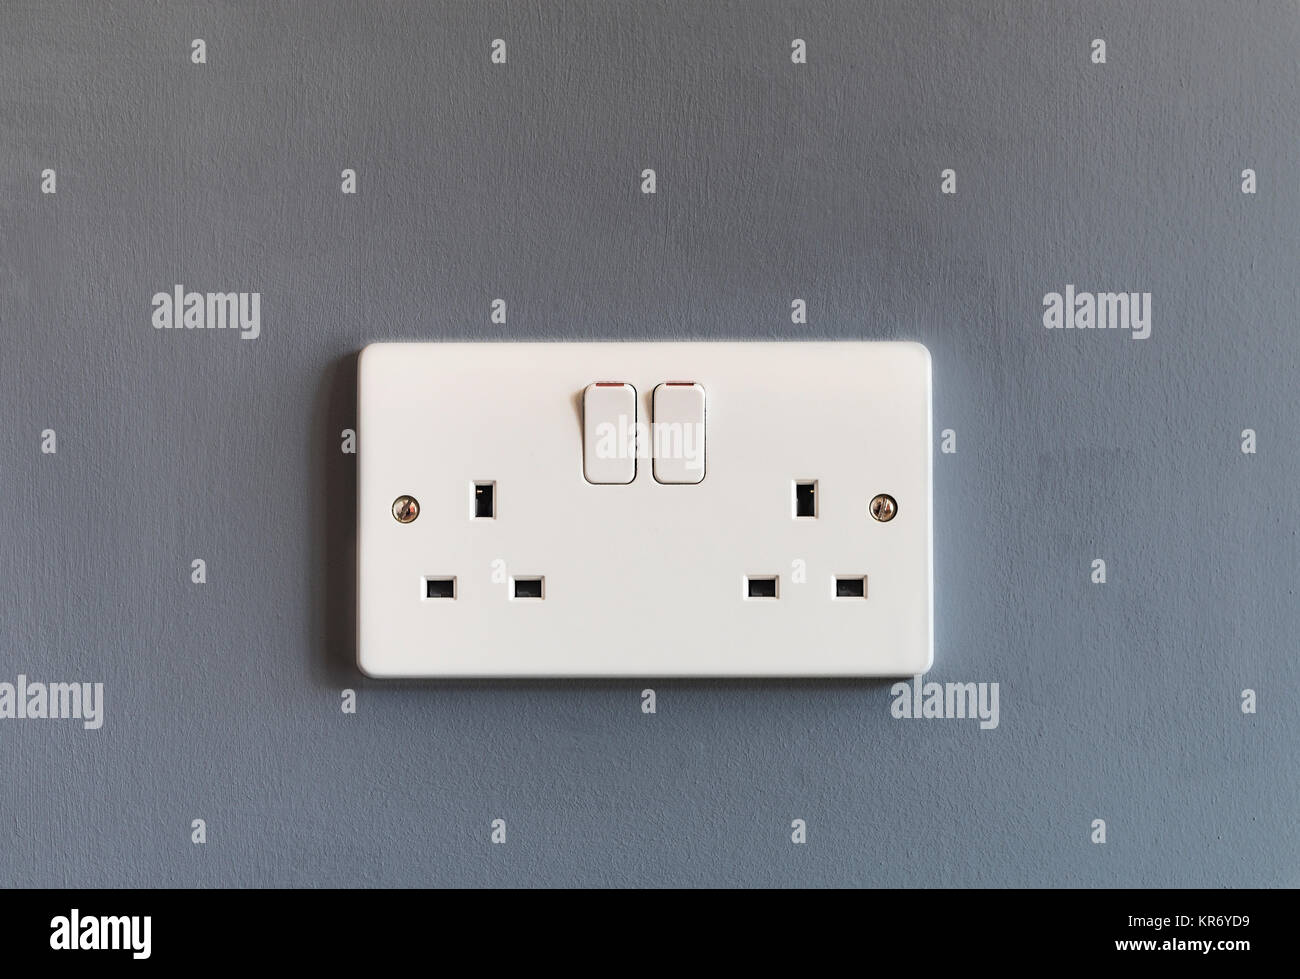 Uk Outlet Wiring Stock Photos Images Alamy Wall Socket Domestic 3 Pin Double Plug Electrical In White Plastic On A Grey Coloured